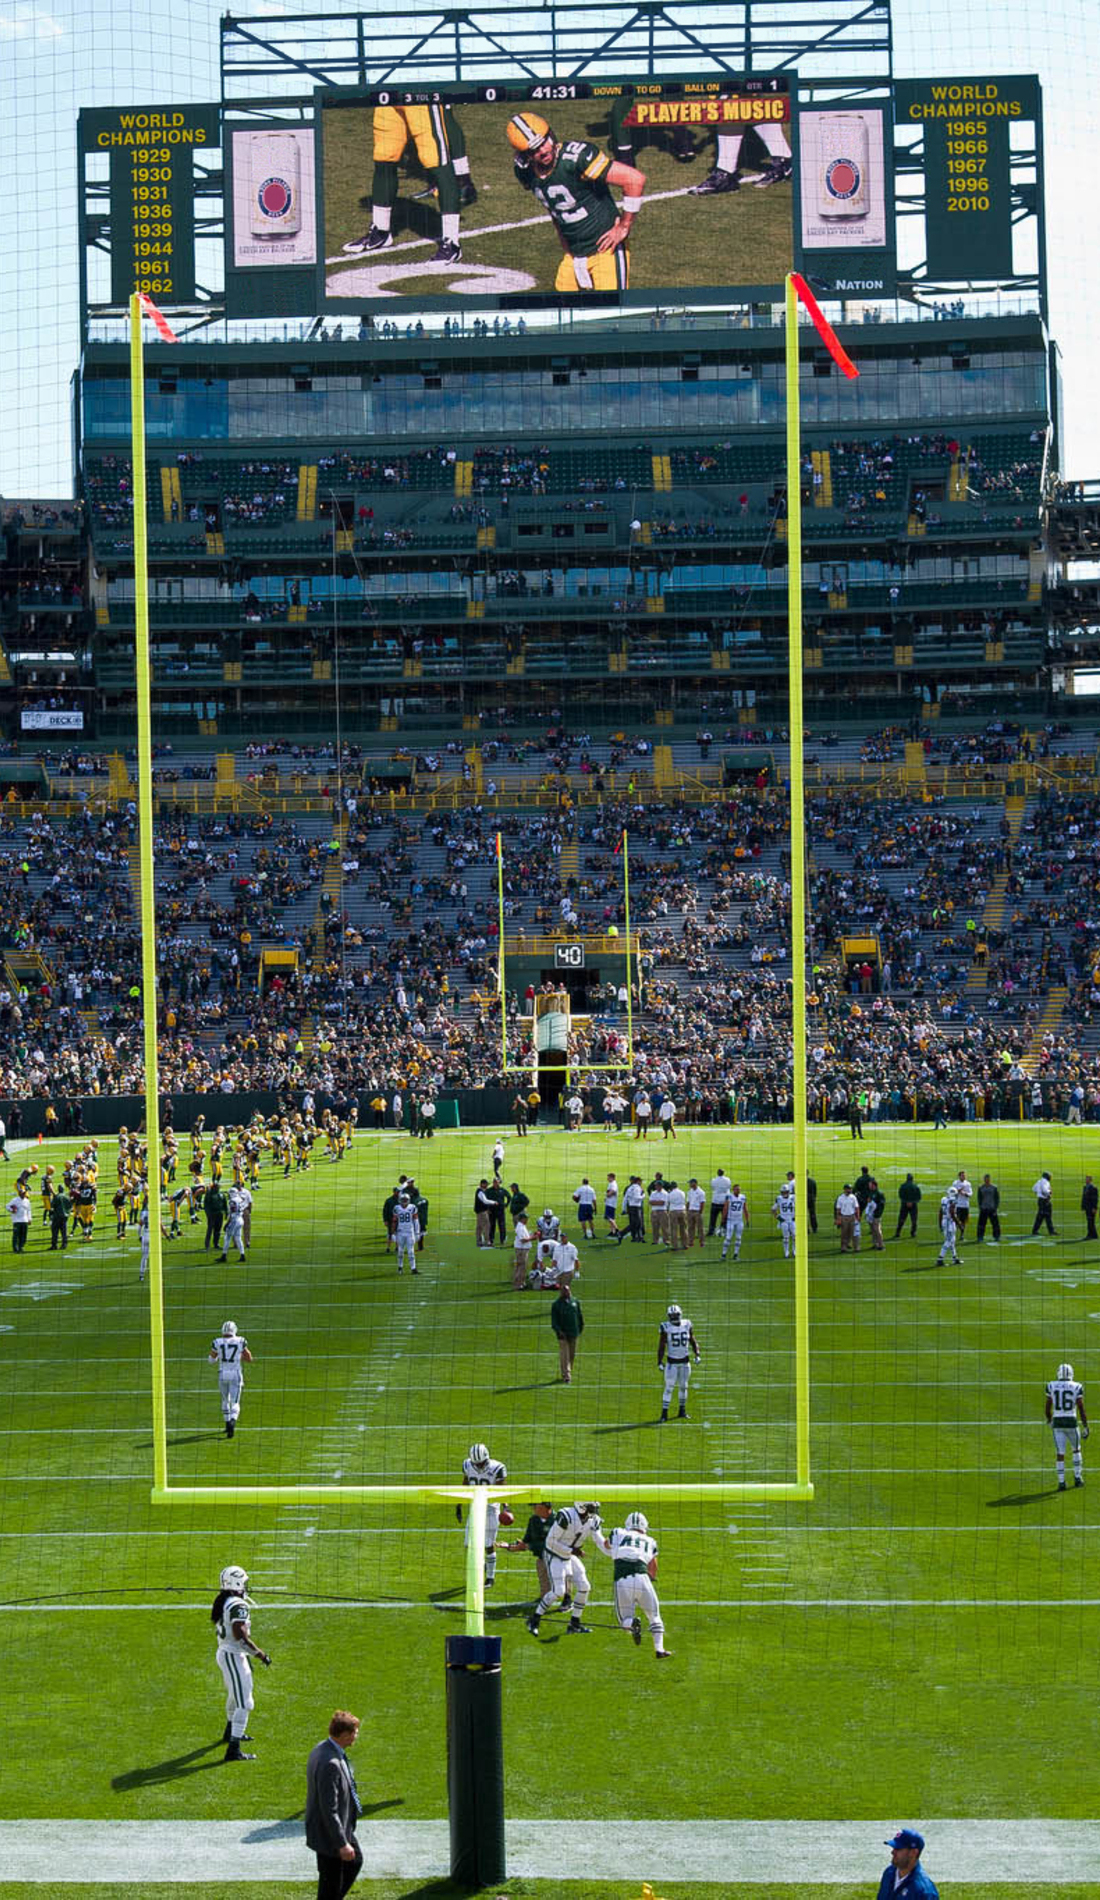 A Green Bay Packers live event